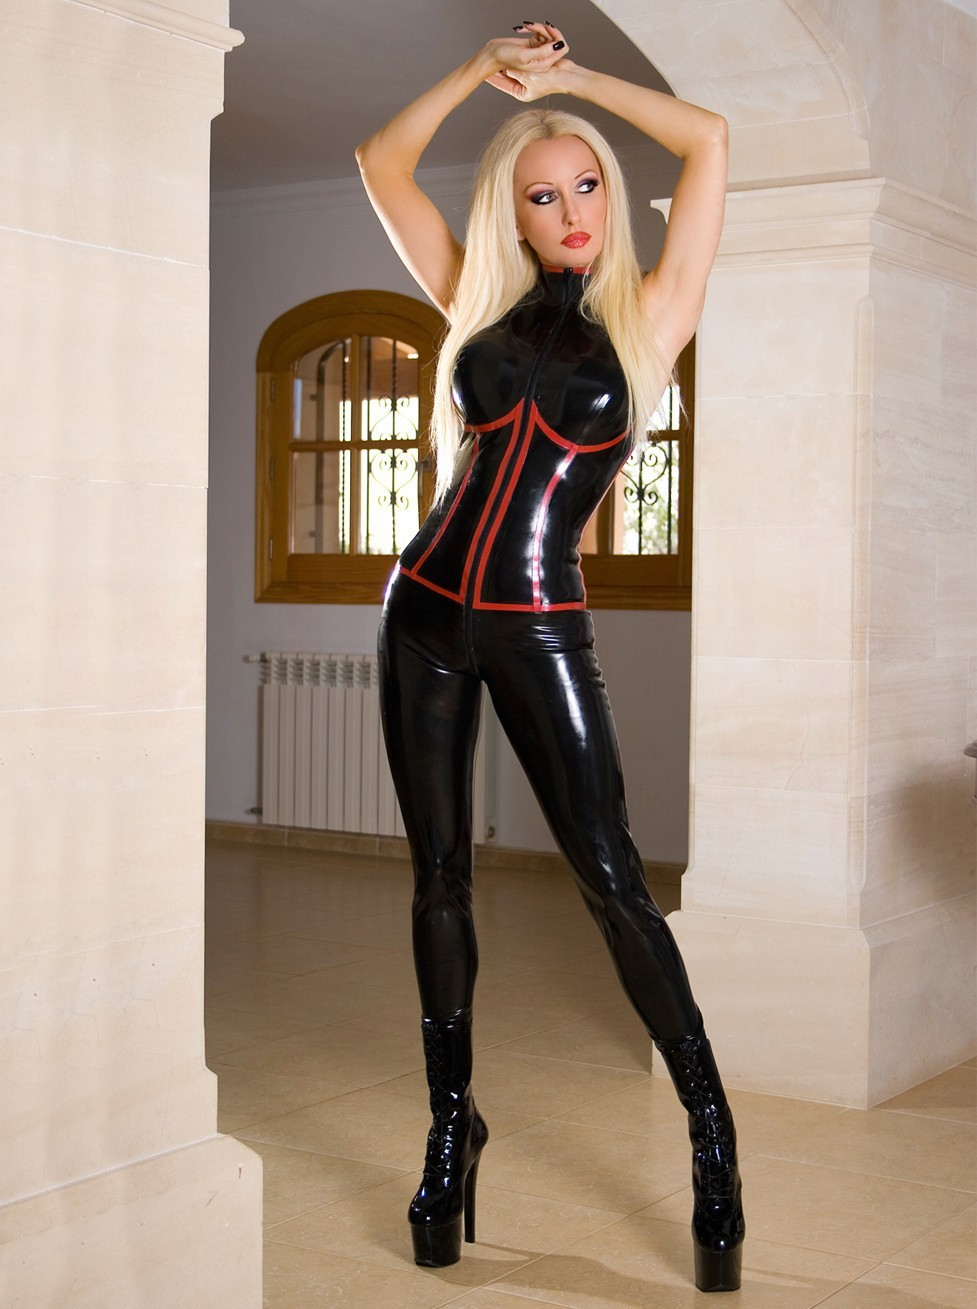 Wild babe Cindy Hope is posing in her tight latex dress on camera № 679748  скачать